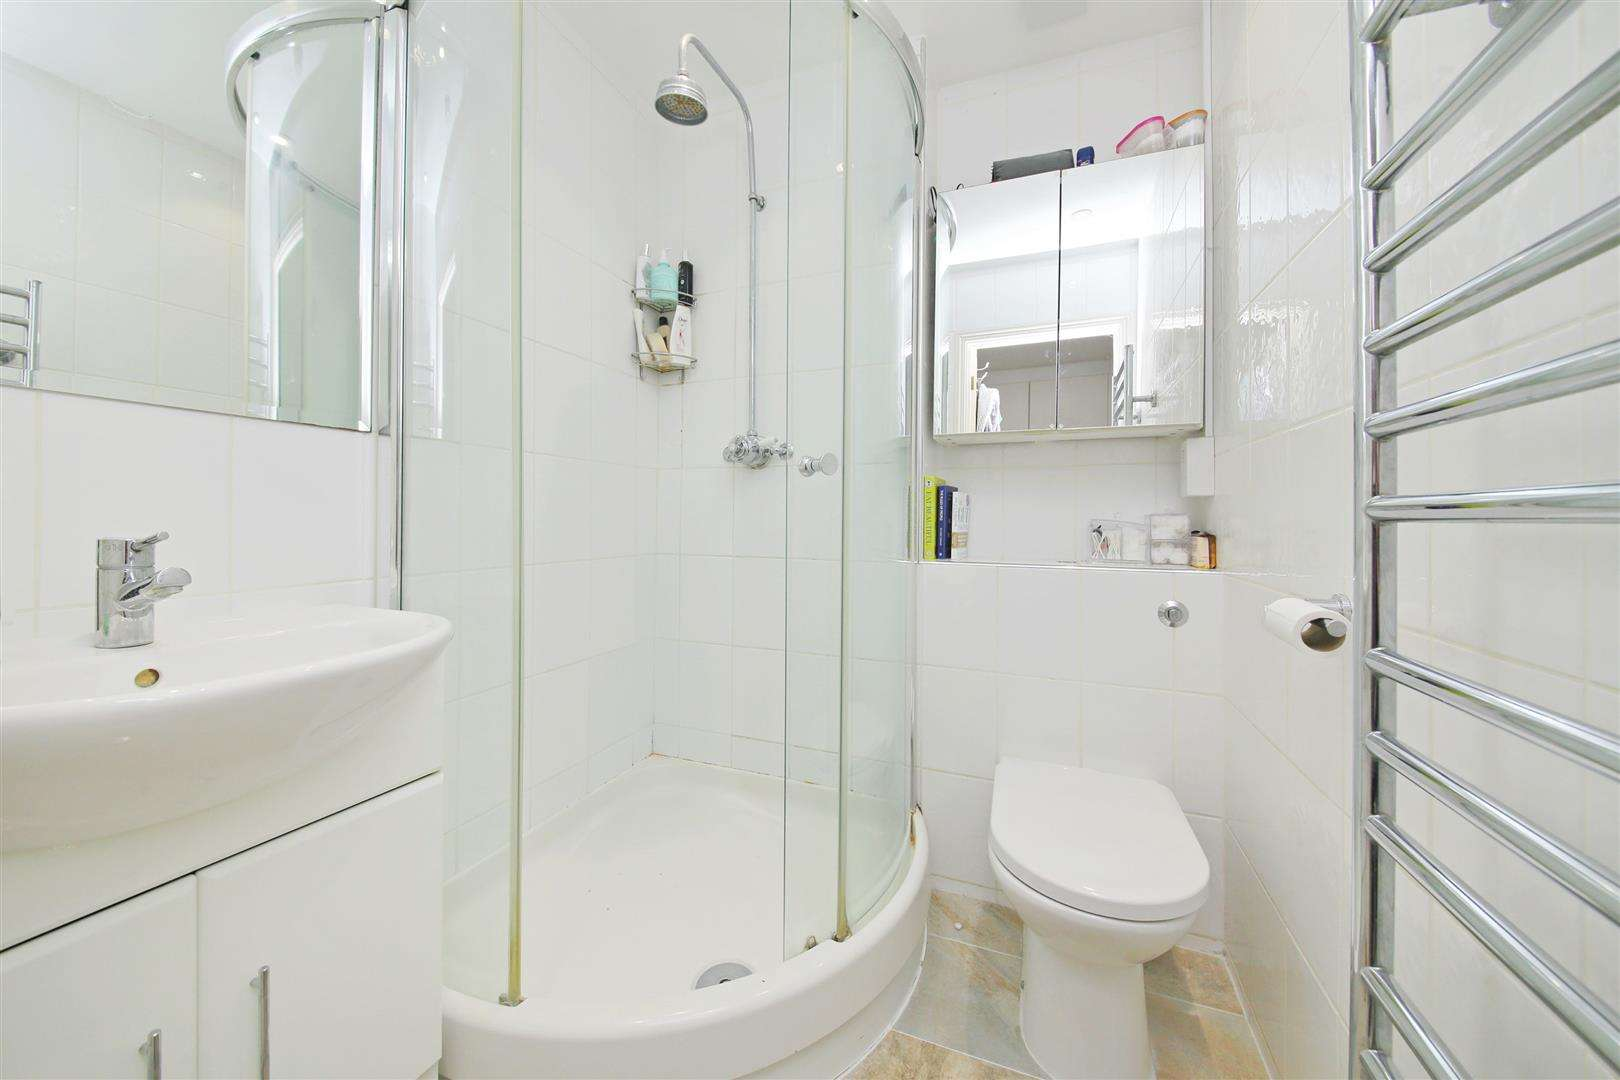 4 bed to rent in Shenley - (Property Image 9)